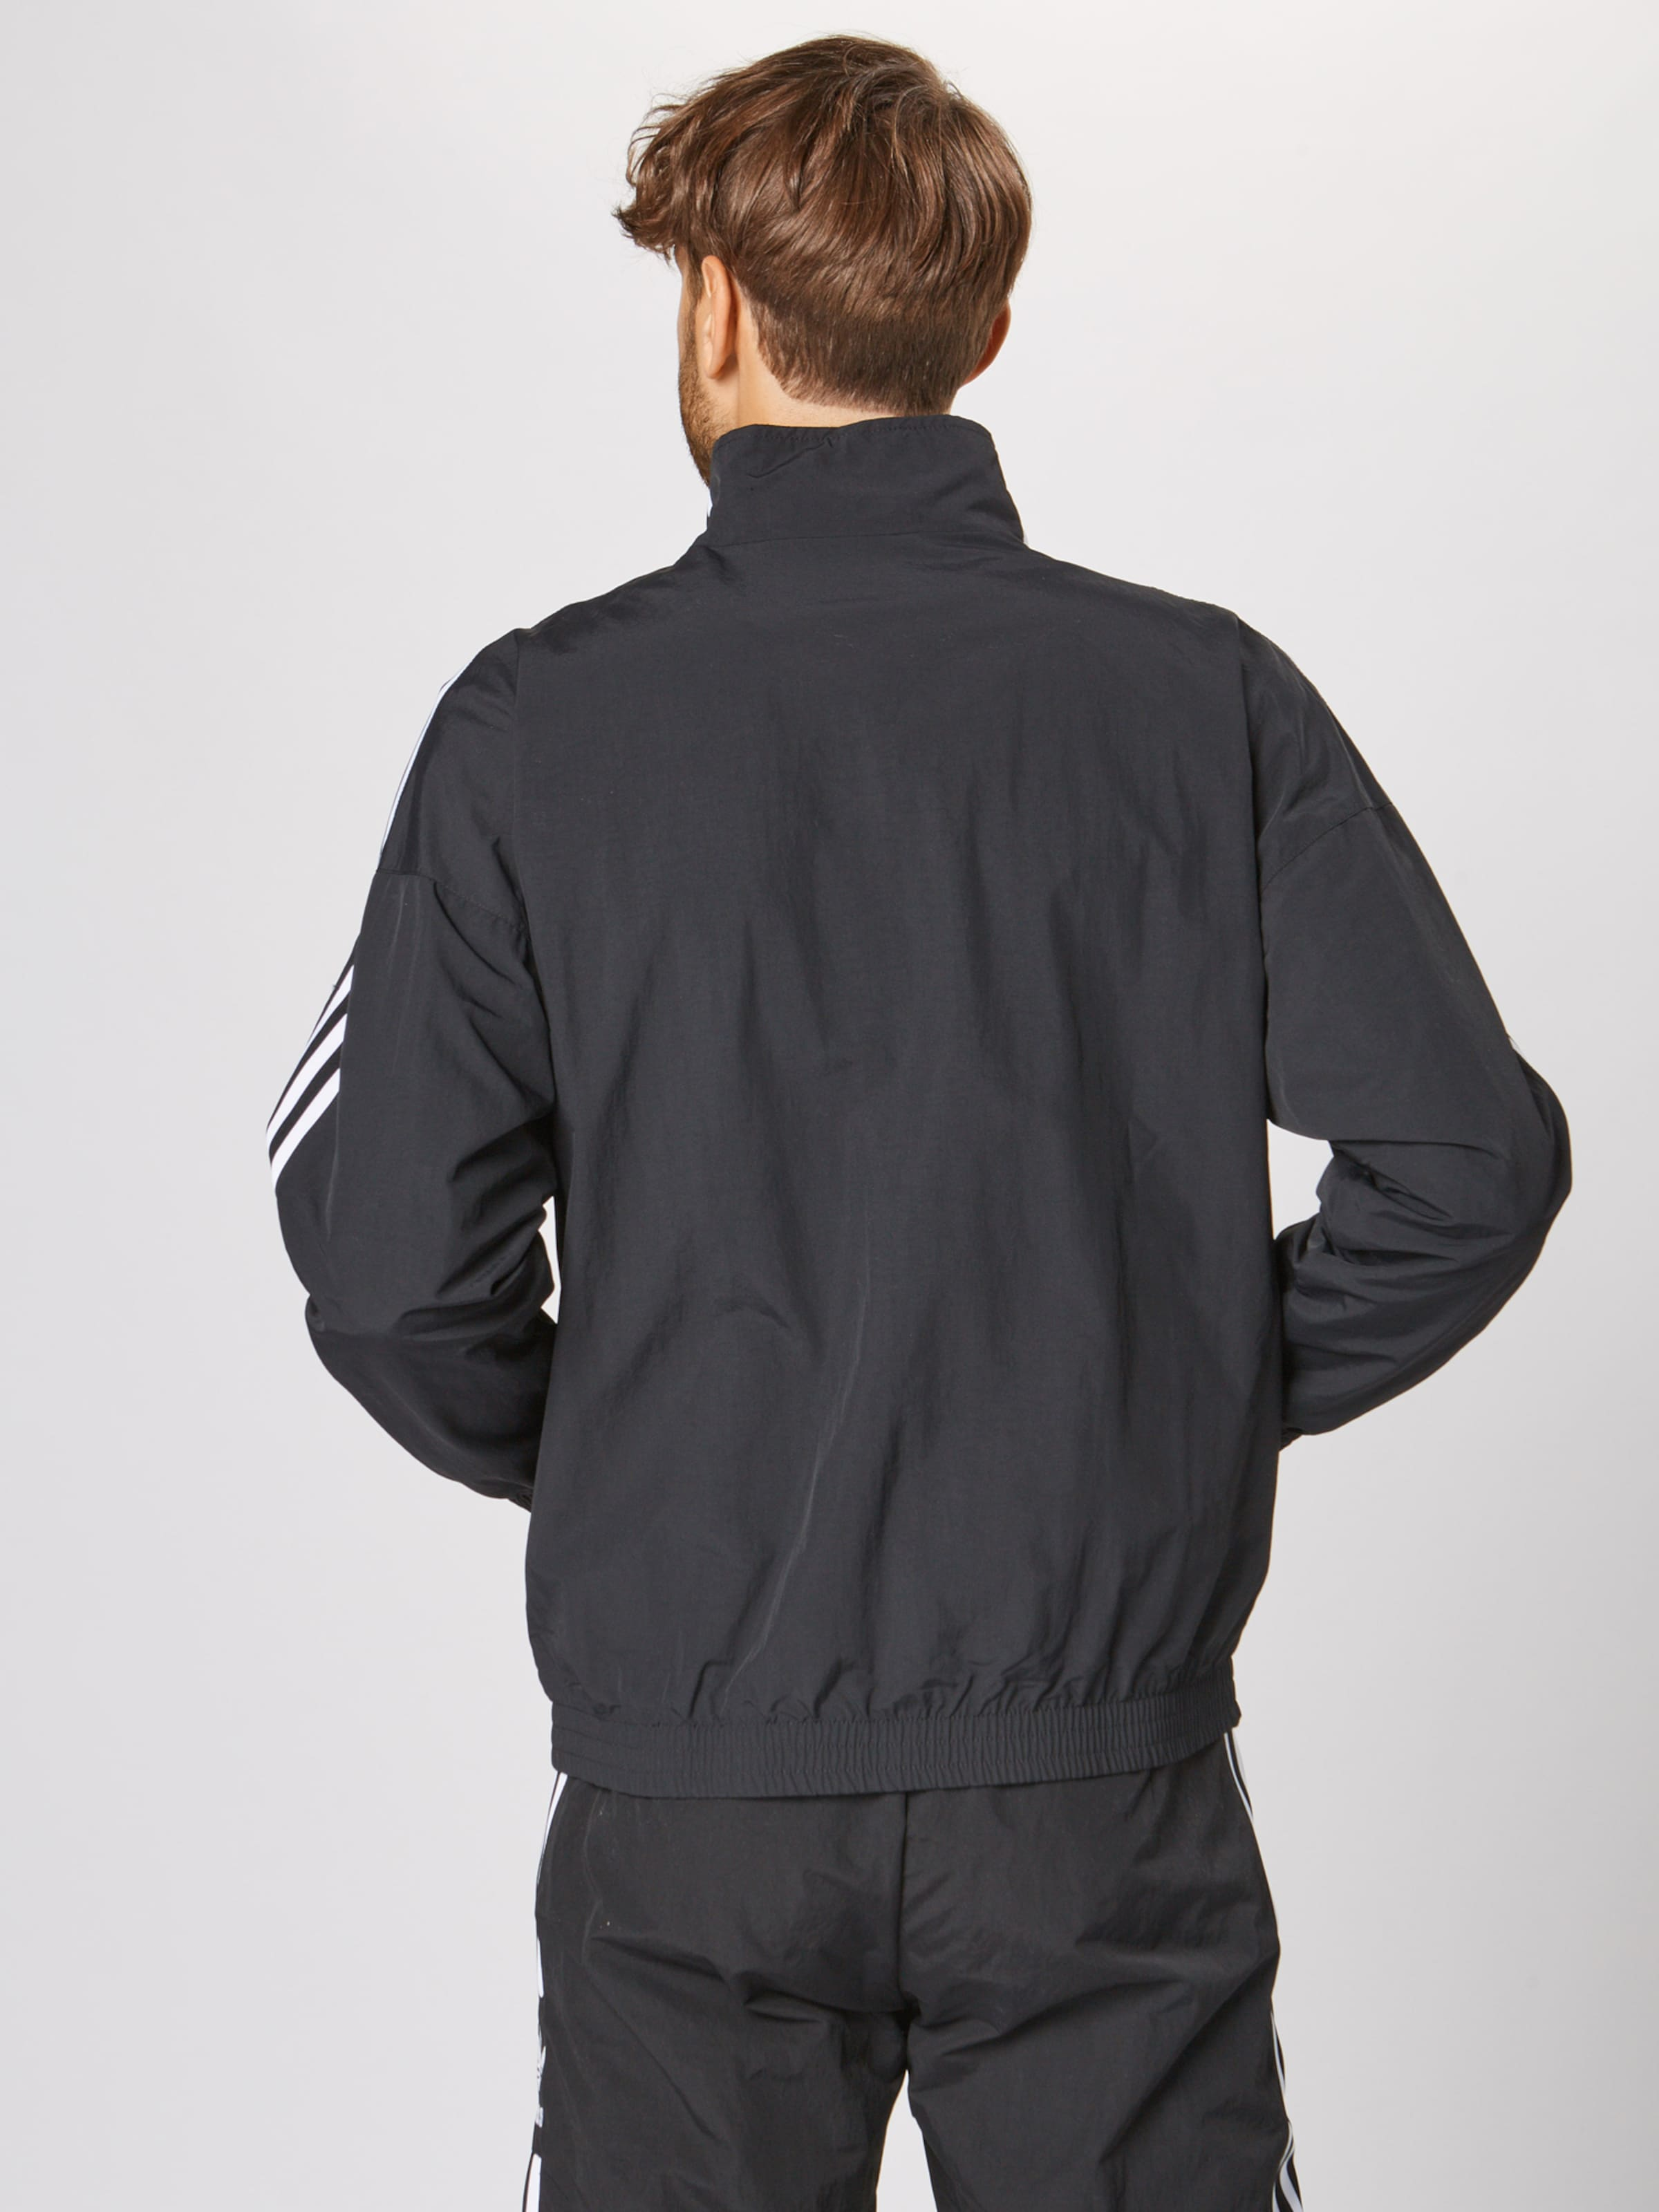 Adidas En Survêtement Tt' 'lock NoirBlanc Up Originals Veste De 1cJTlFK